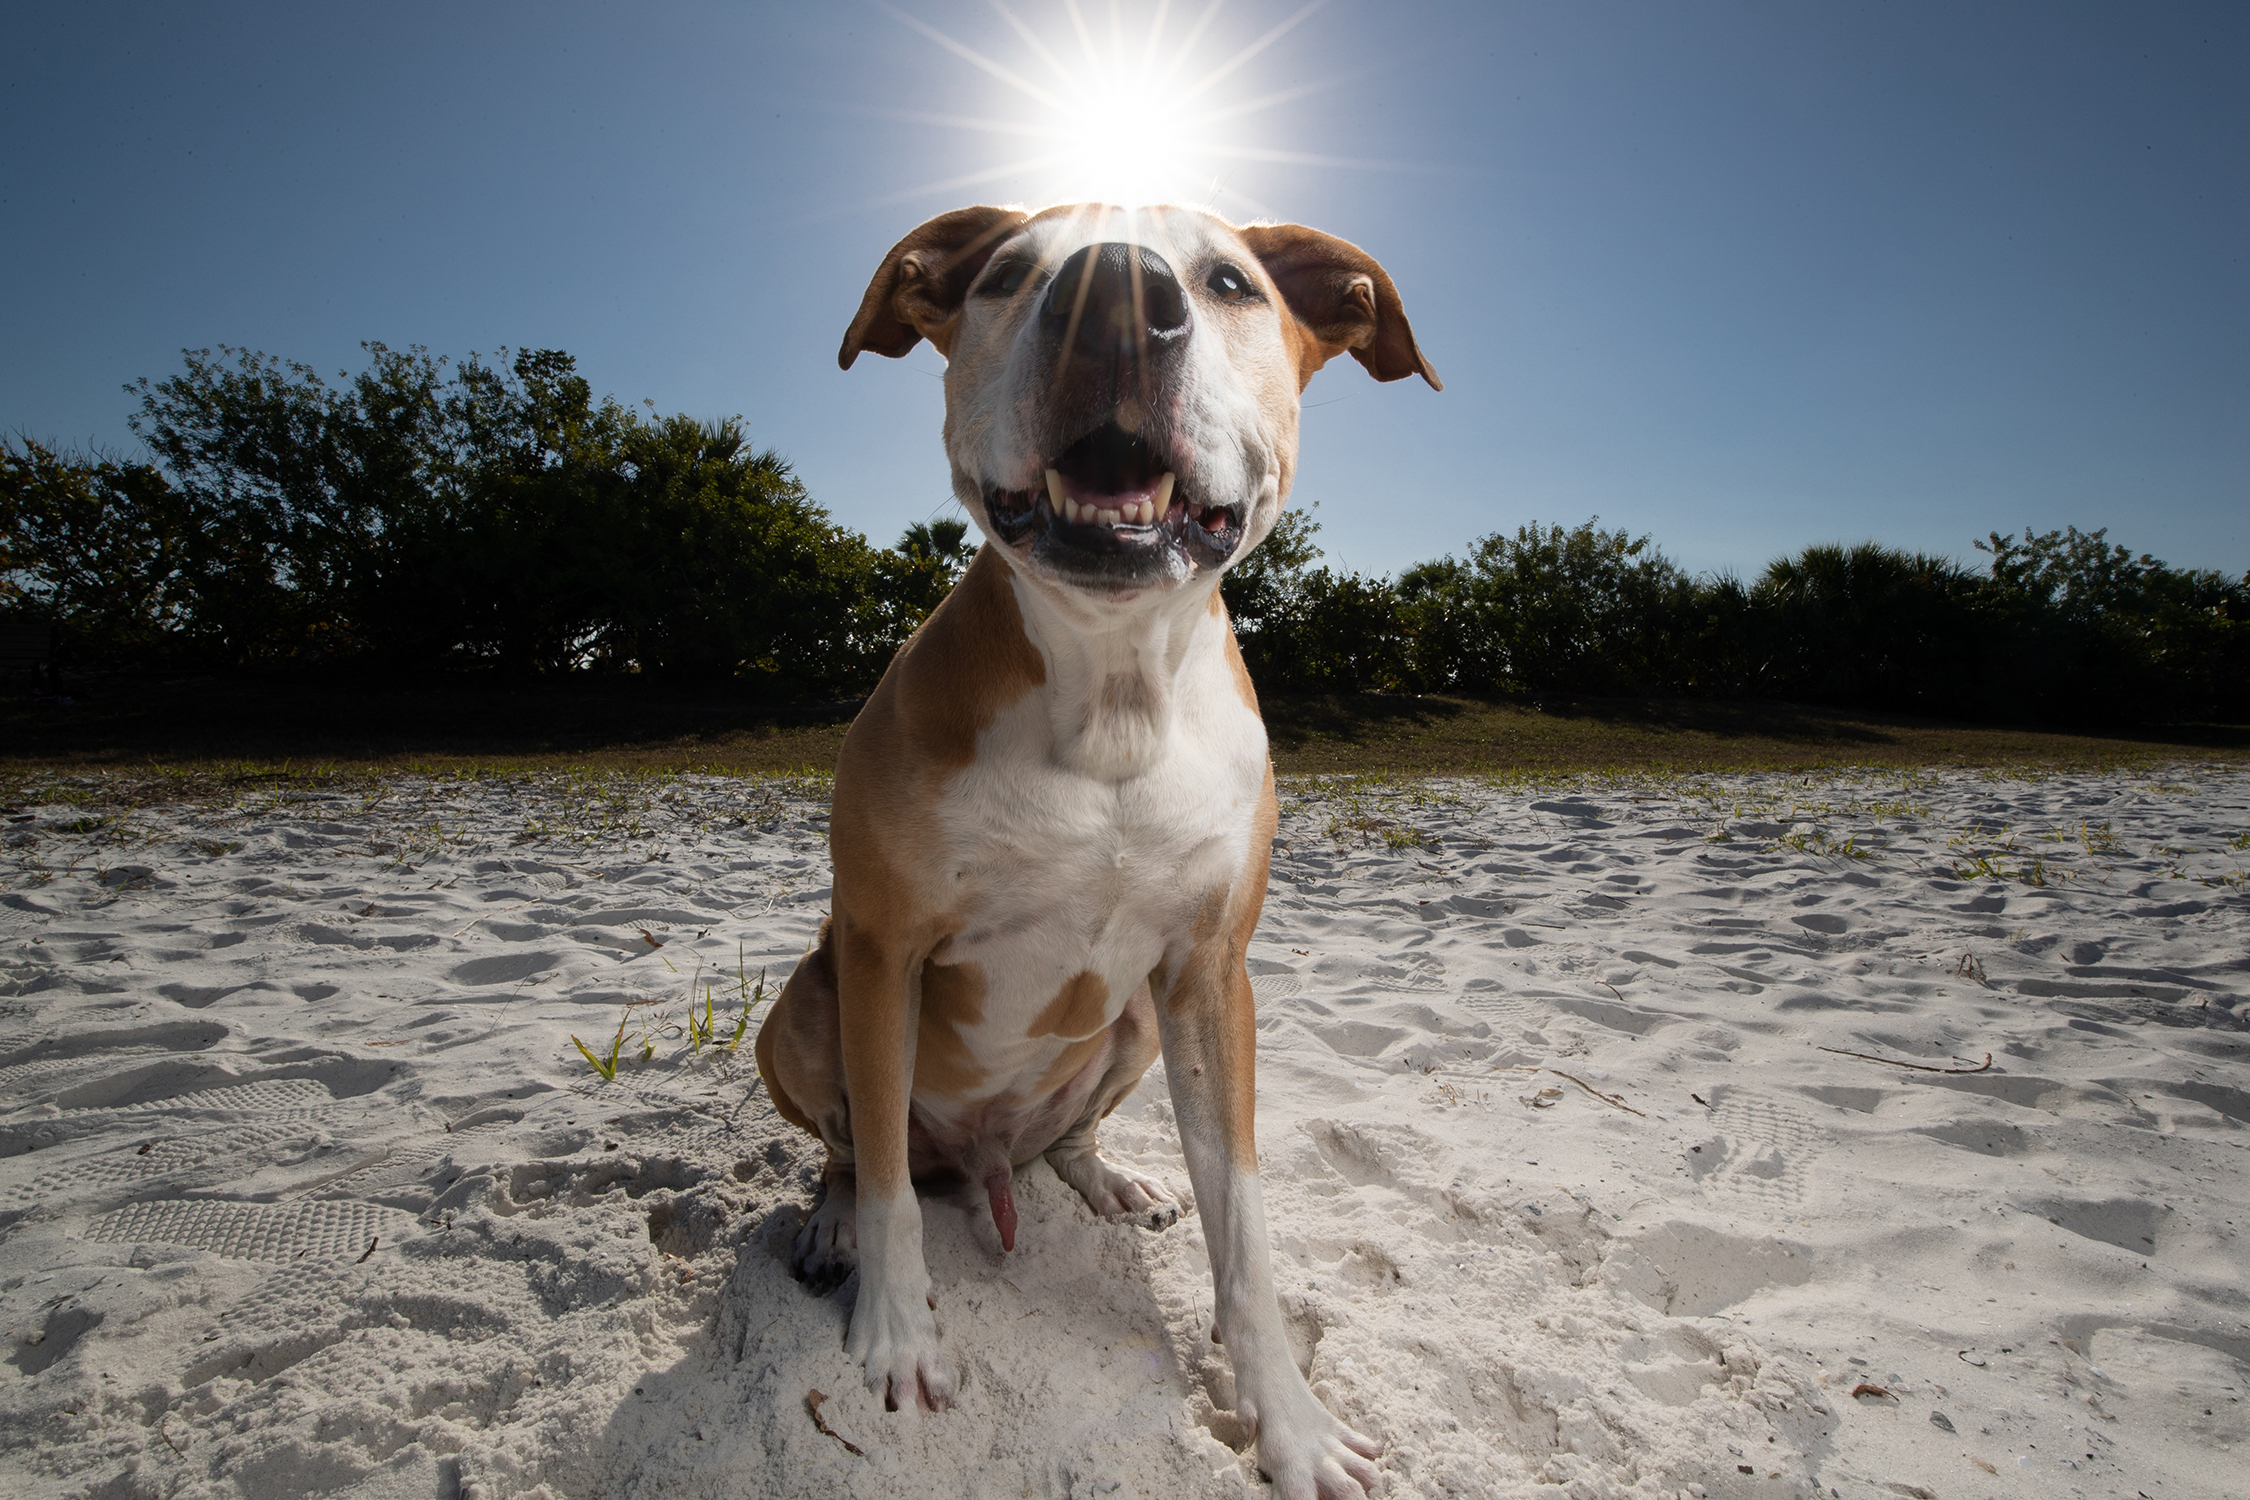 Summer Special: Tampa Wide Angle Pet Photo Shoots